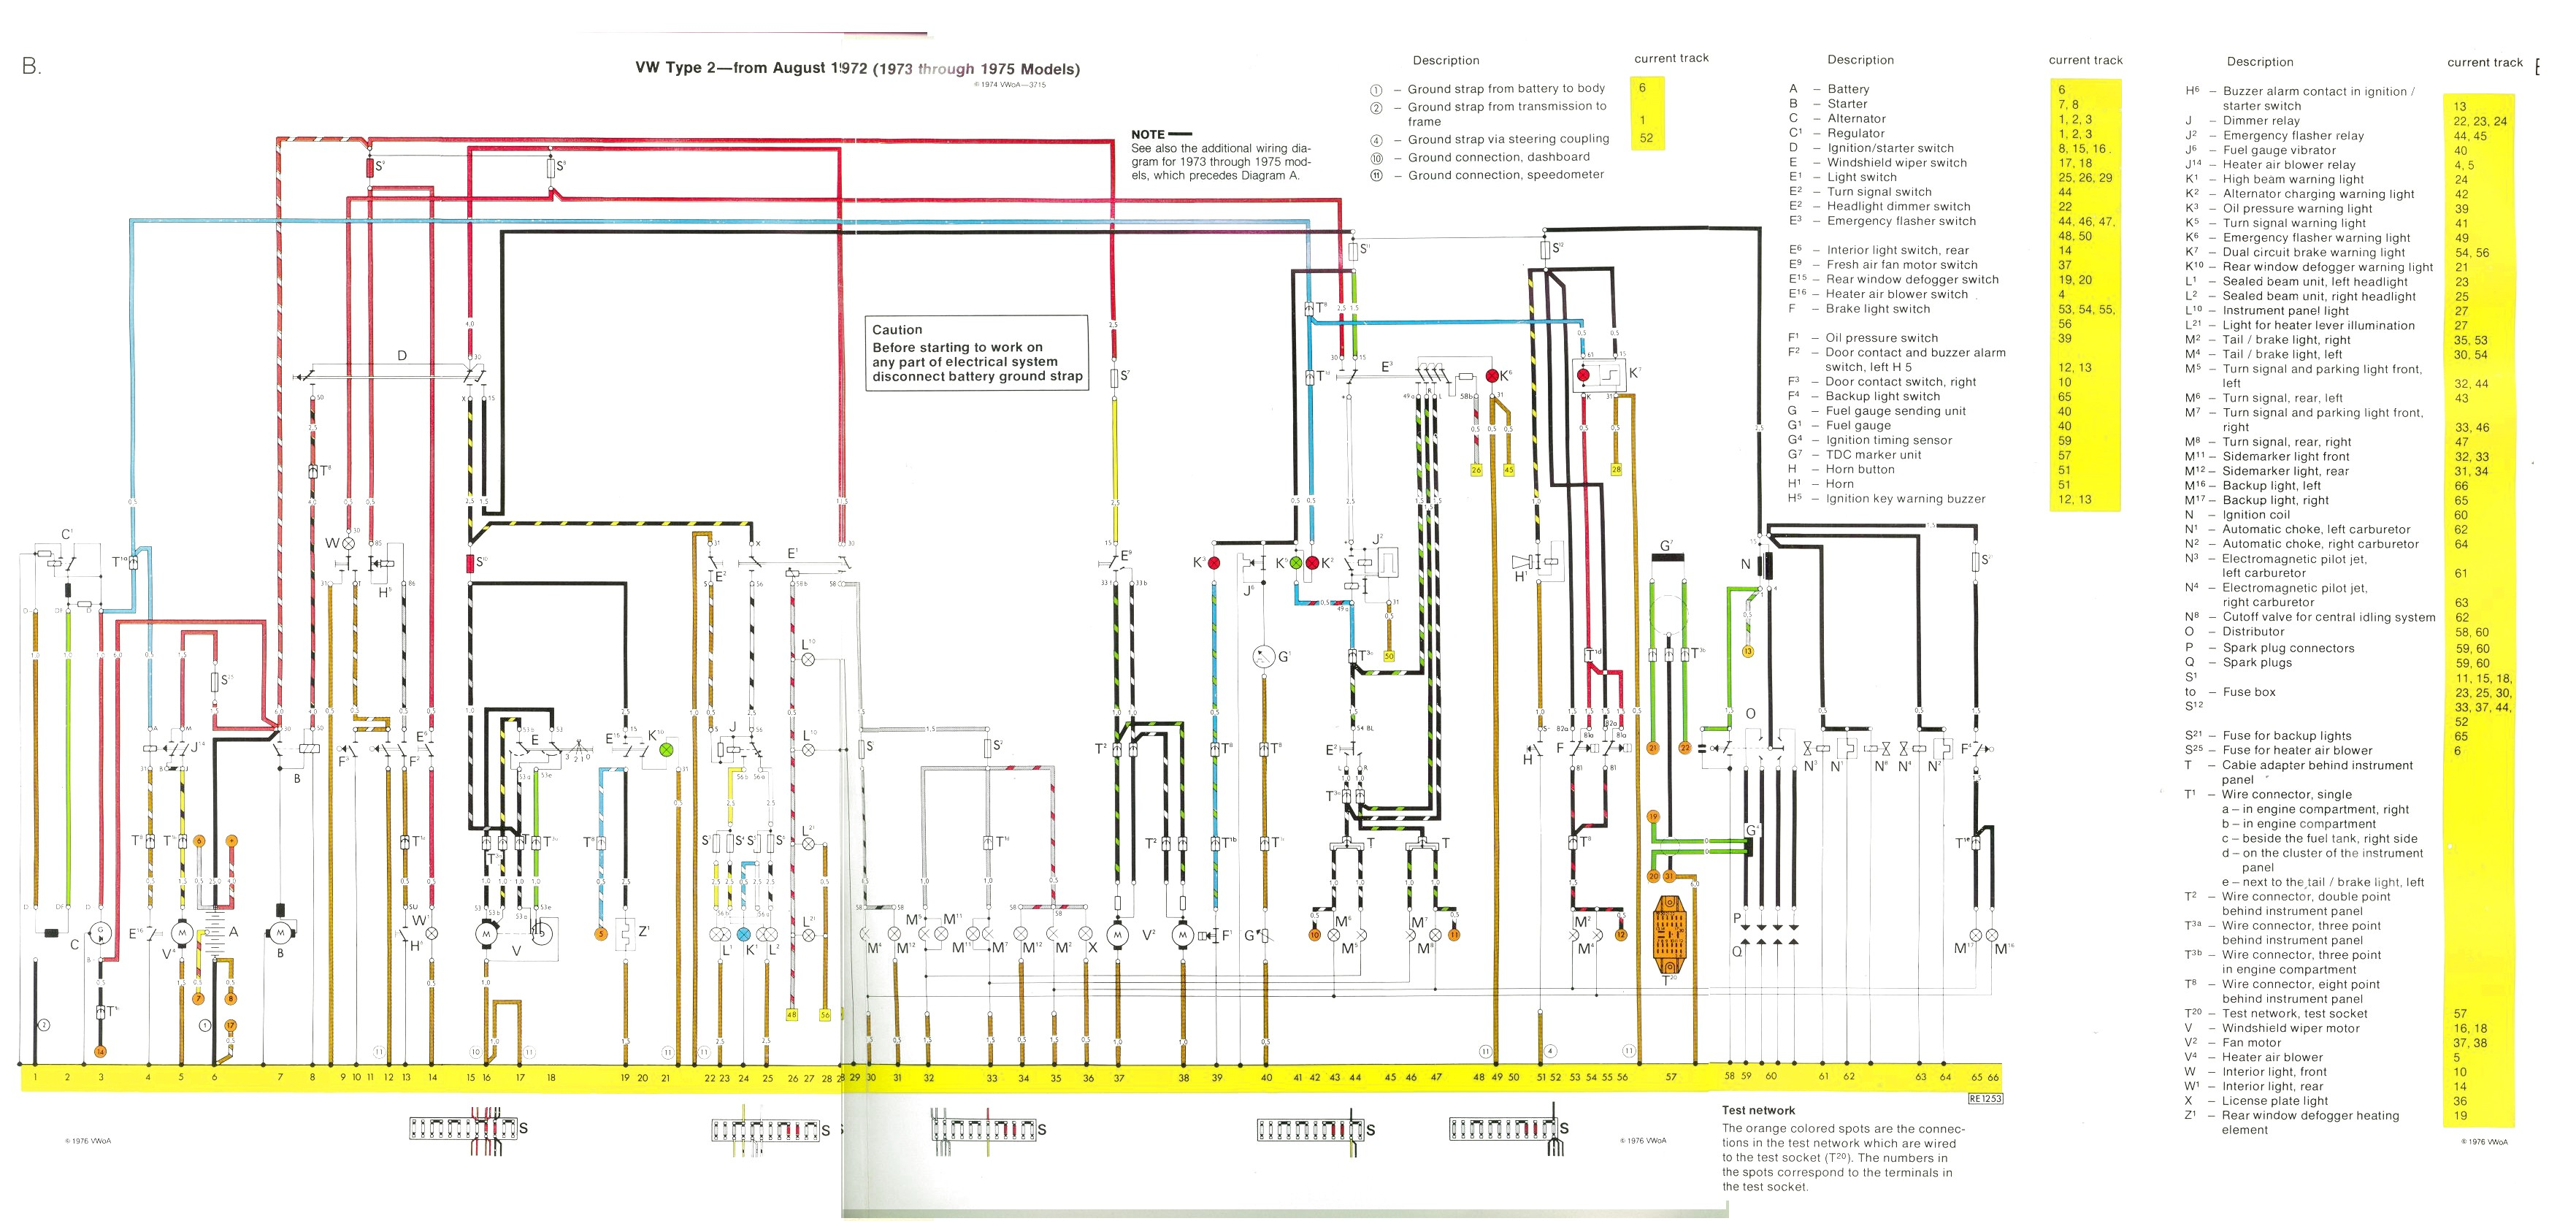 bus 73 75 vintagebus com vw bus (and other) wiring diagrams 74 vw bus wiring diagram at nearapp.co